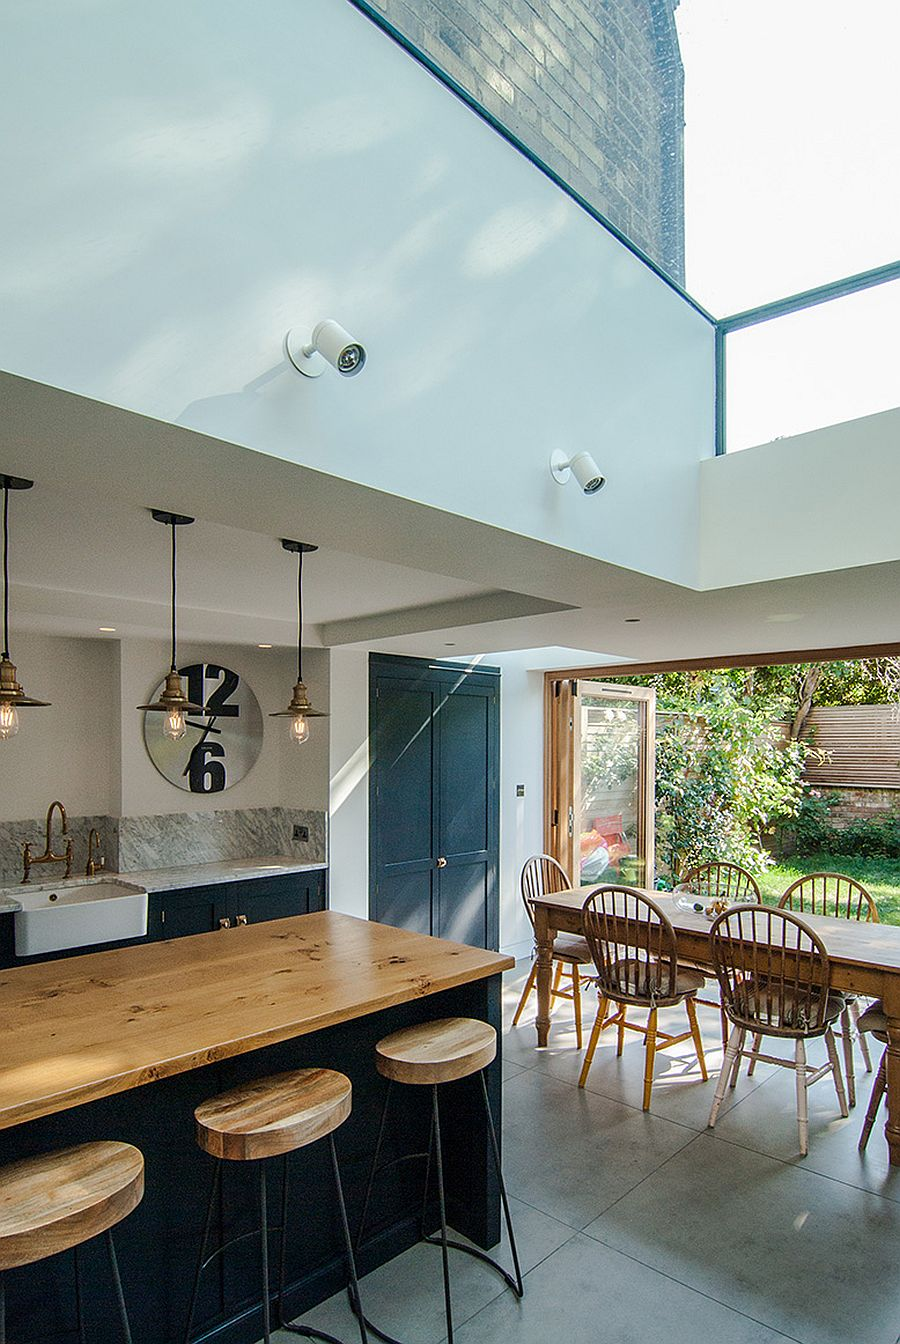 Glazed-ceiling-of-the-extension-brings-the-sky-indoors-36518